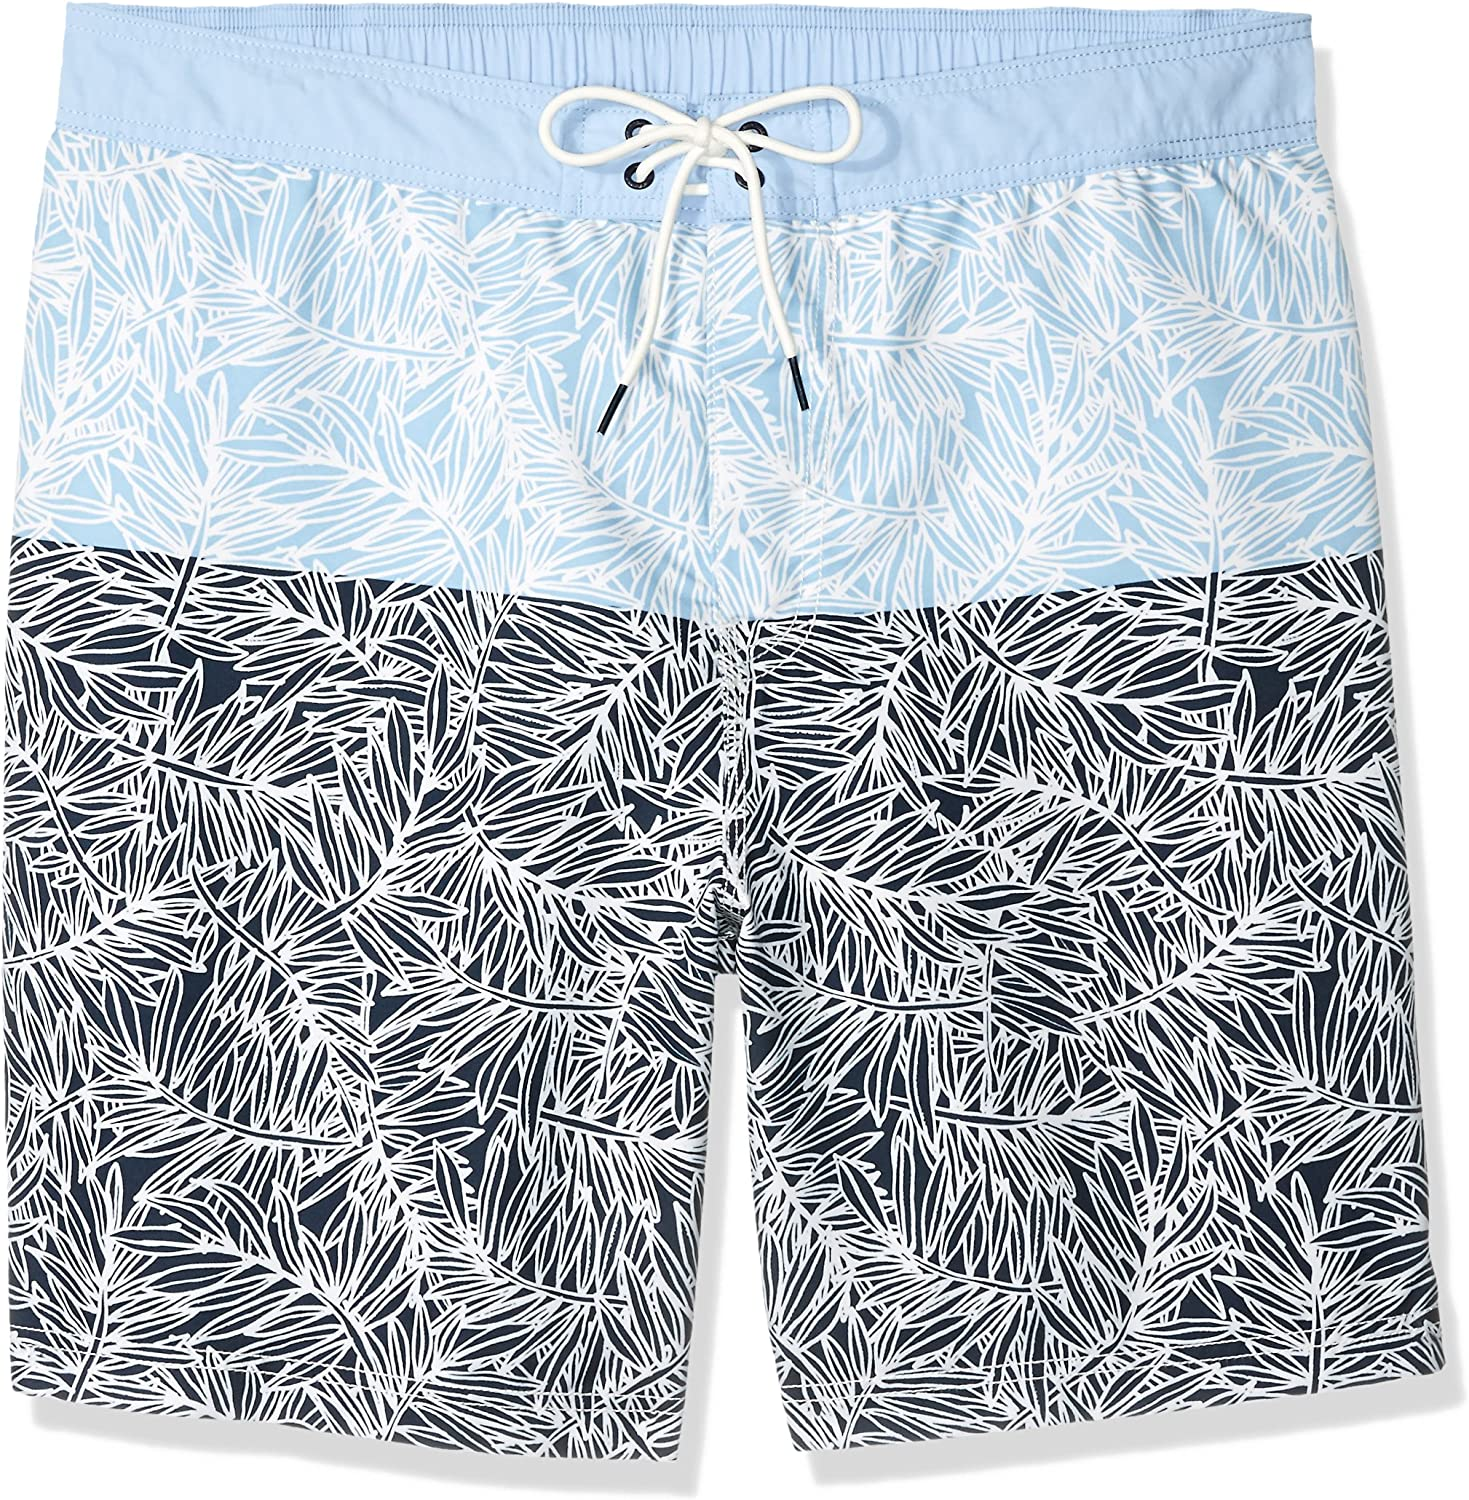 Nautica Men's Quick Dry Printed Swim Trunk